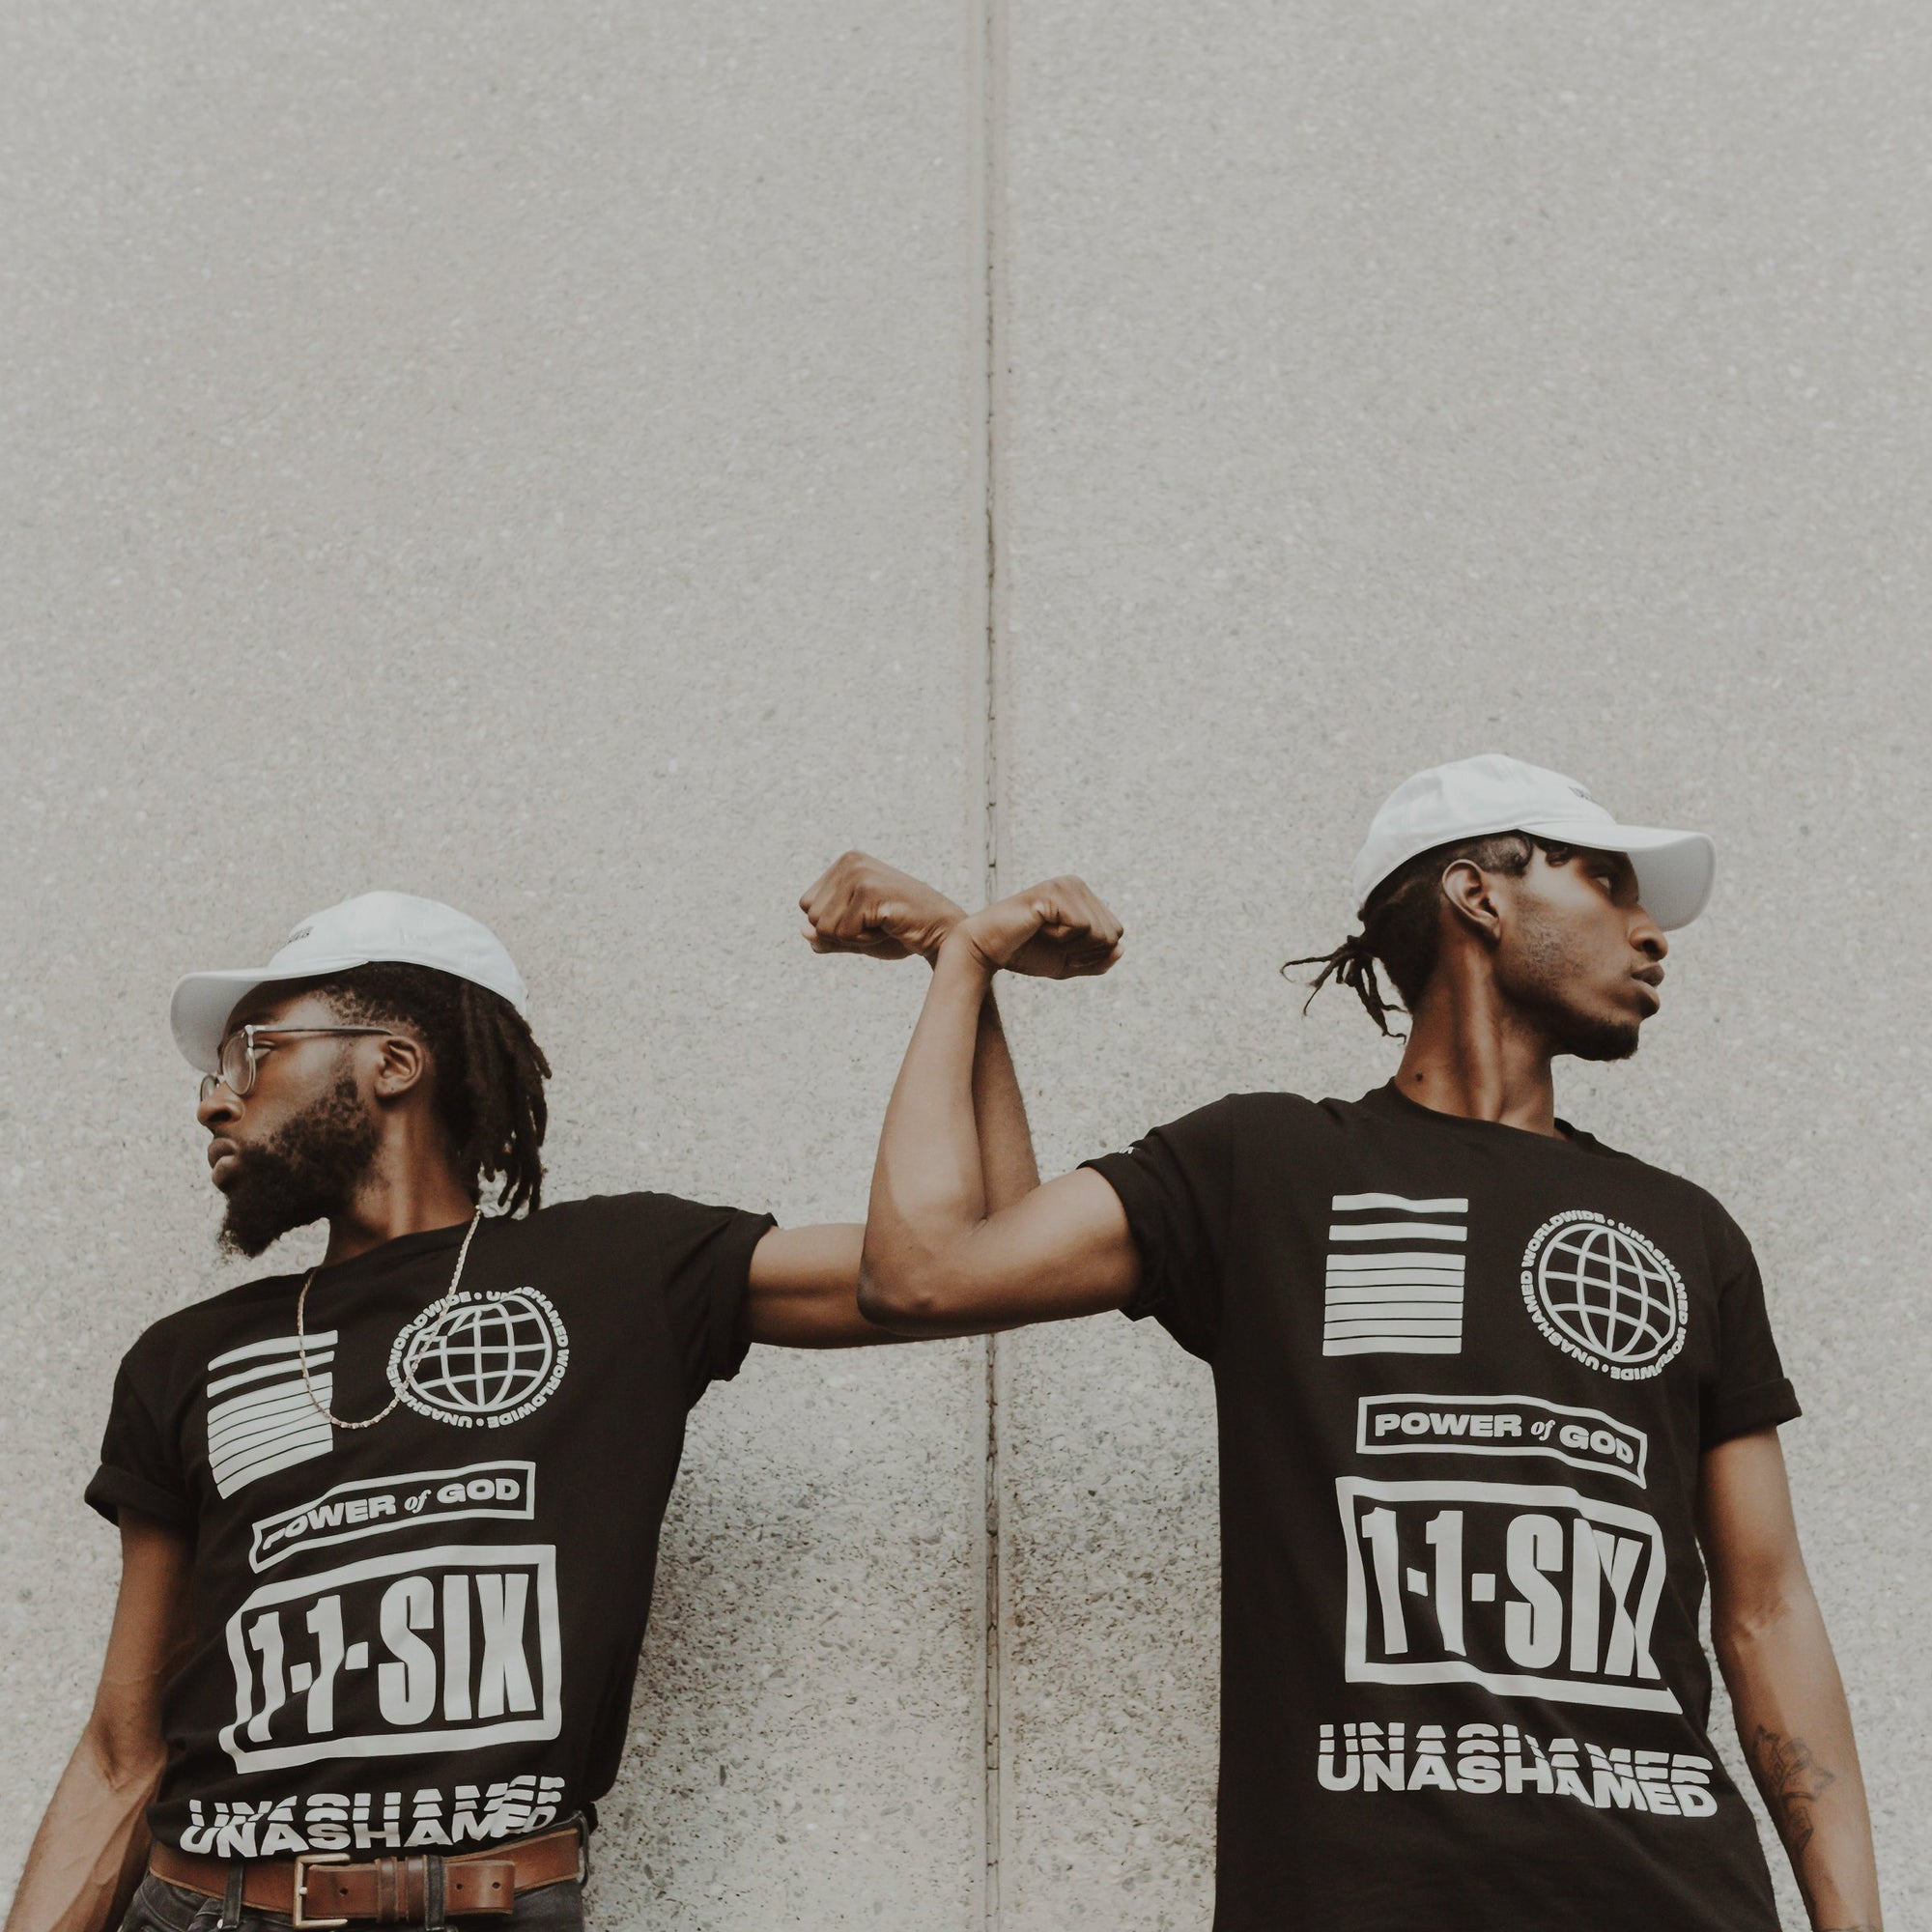 Unashamed x Power of God T-Shirt